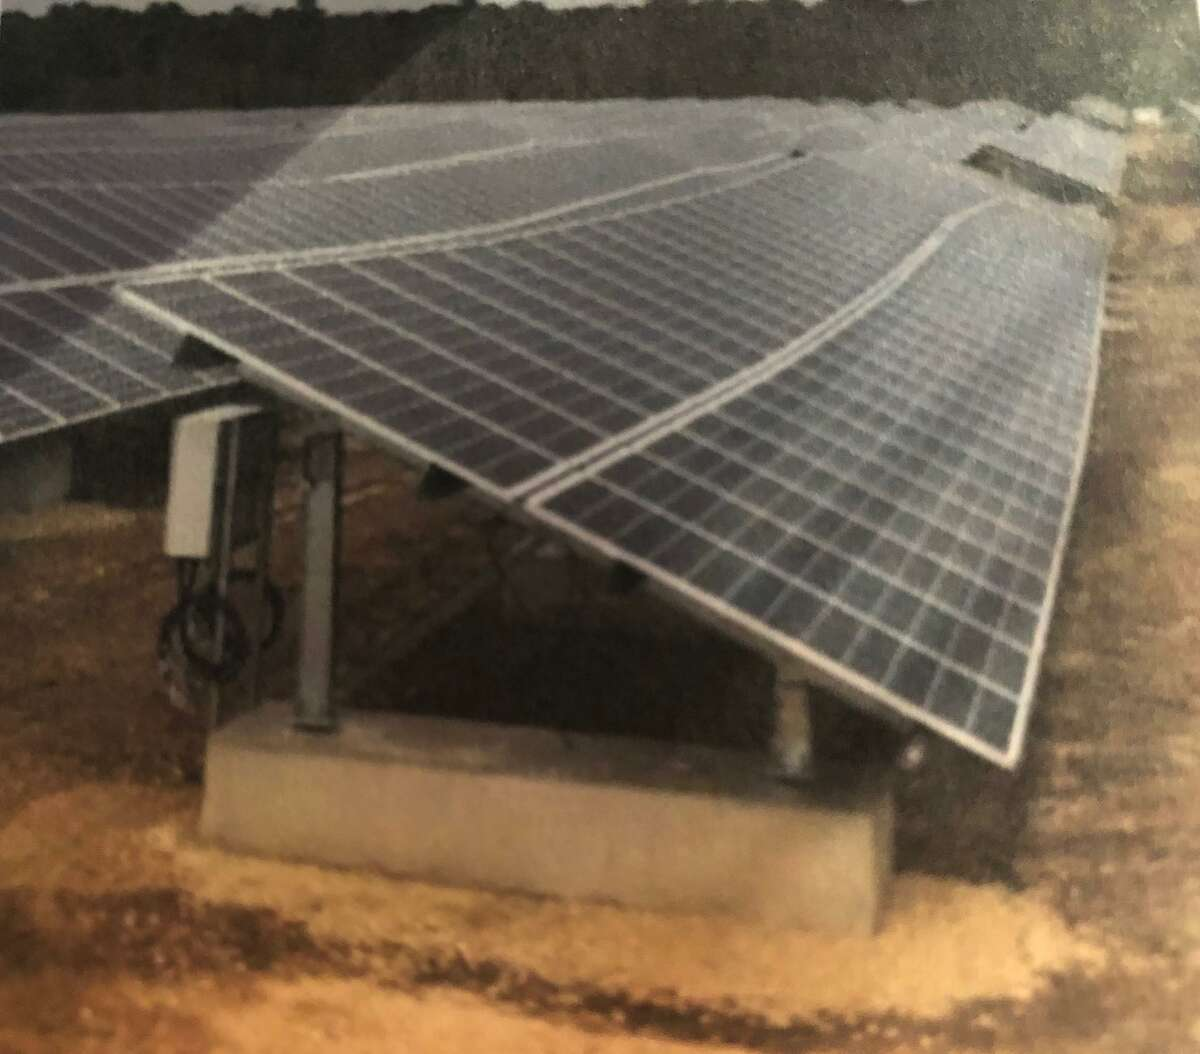 This is an example of RBI solar ballast ground mount for a land fill in Brown Mills, N.J. This example was part of the application calling for a community solar garden off River Road.